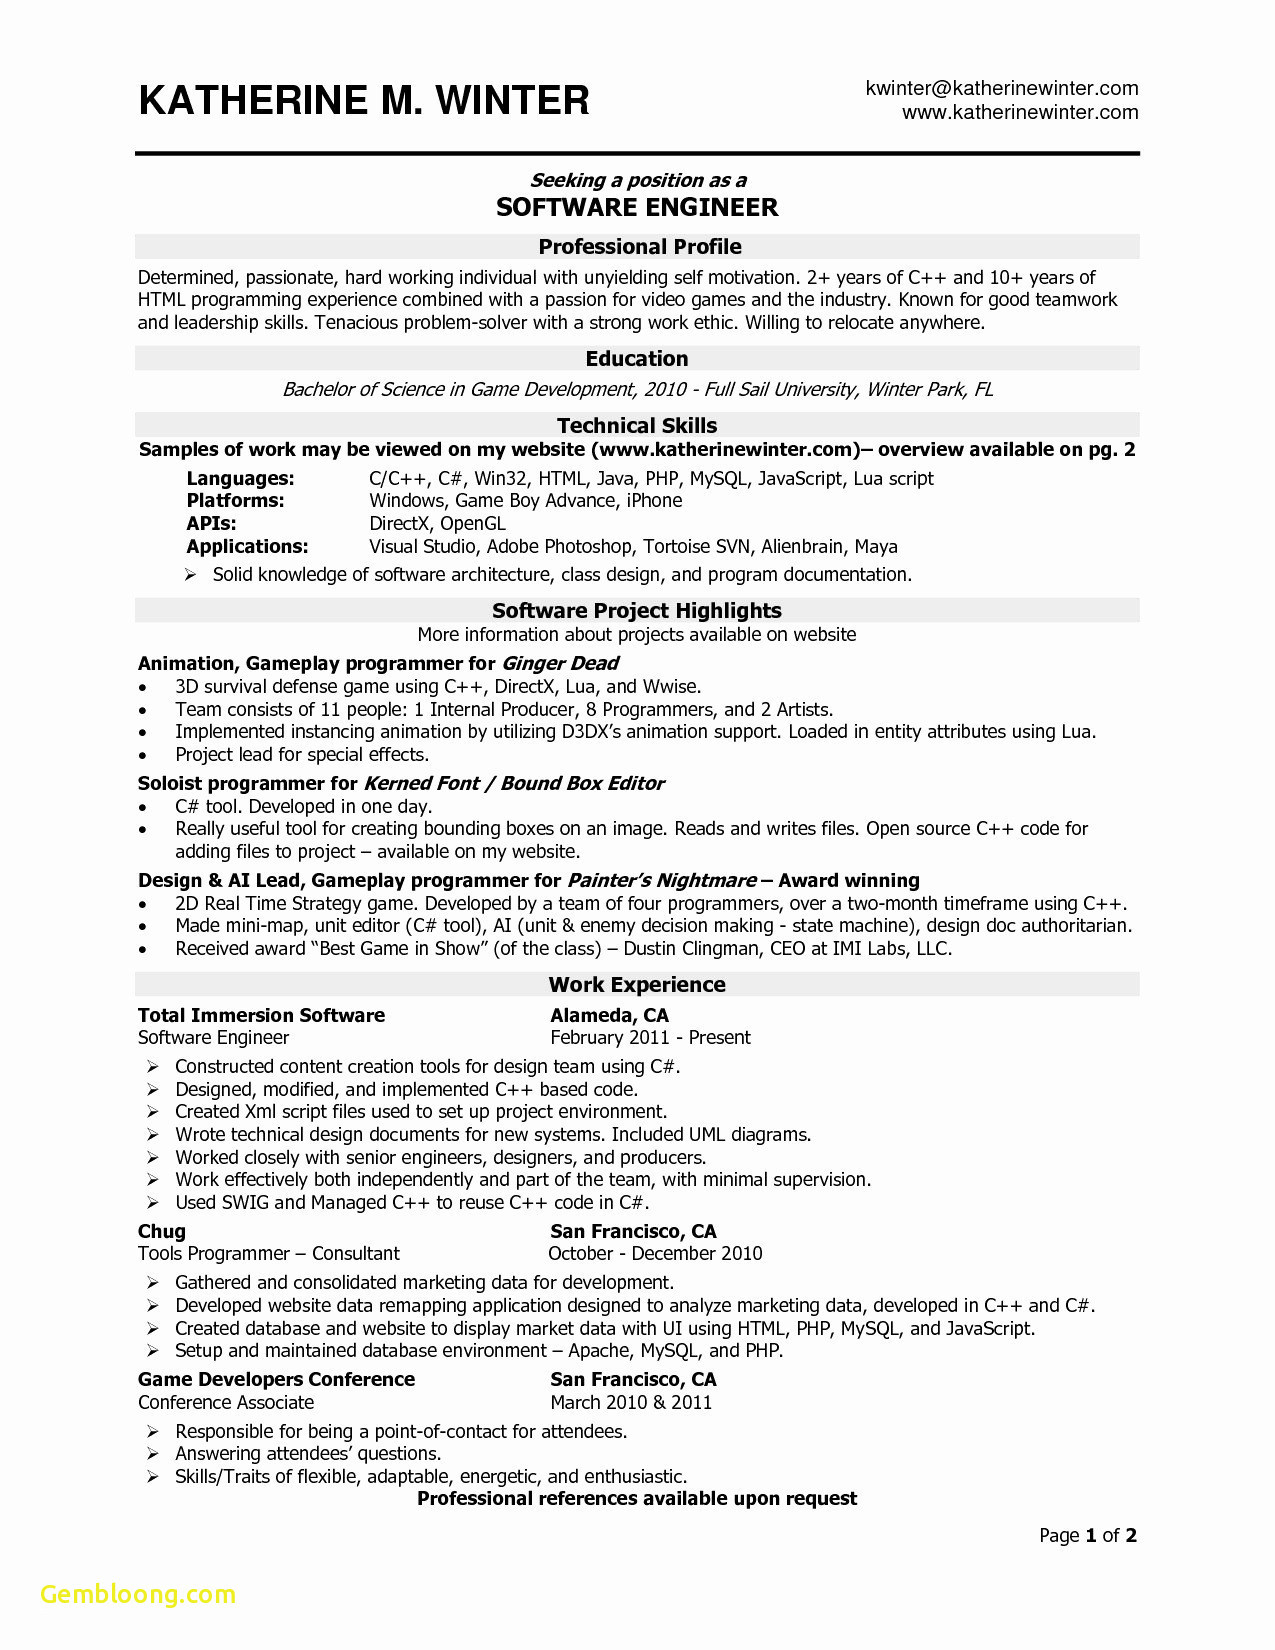 Software Developer Resume Template - software Developer Sample Resume Lovely Template Engineer Templates